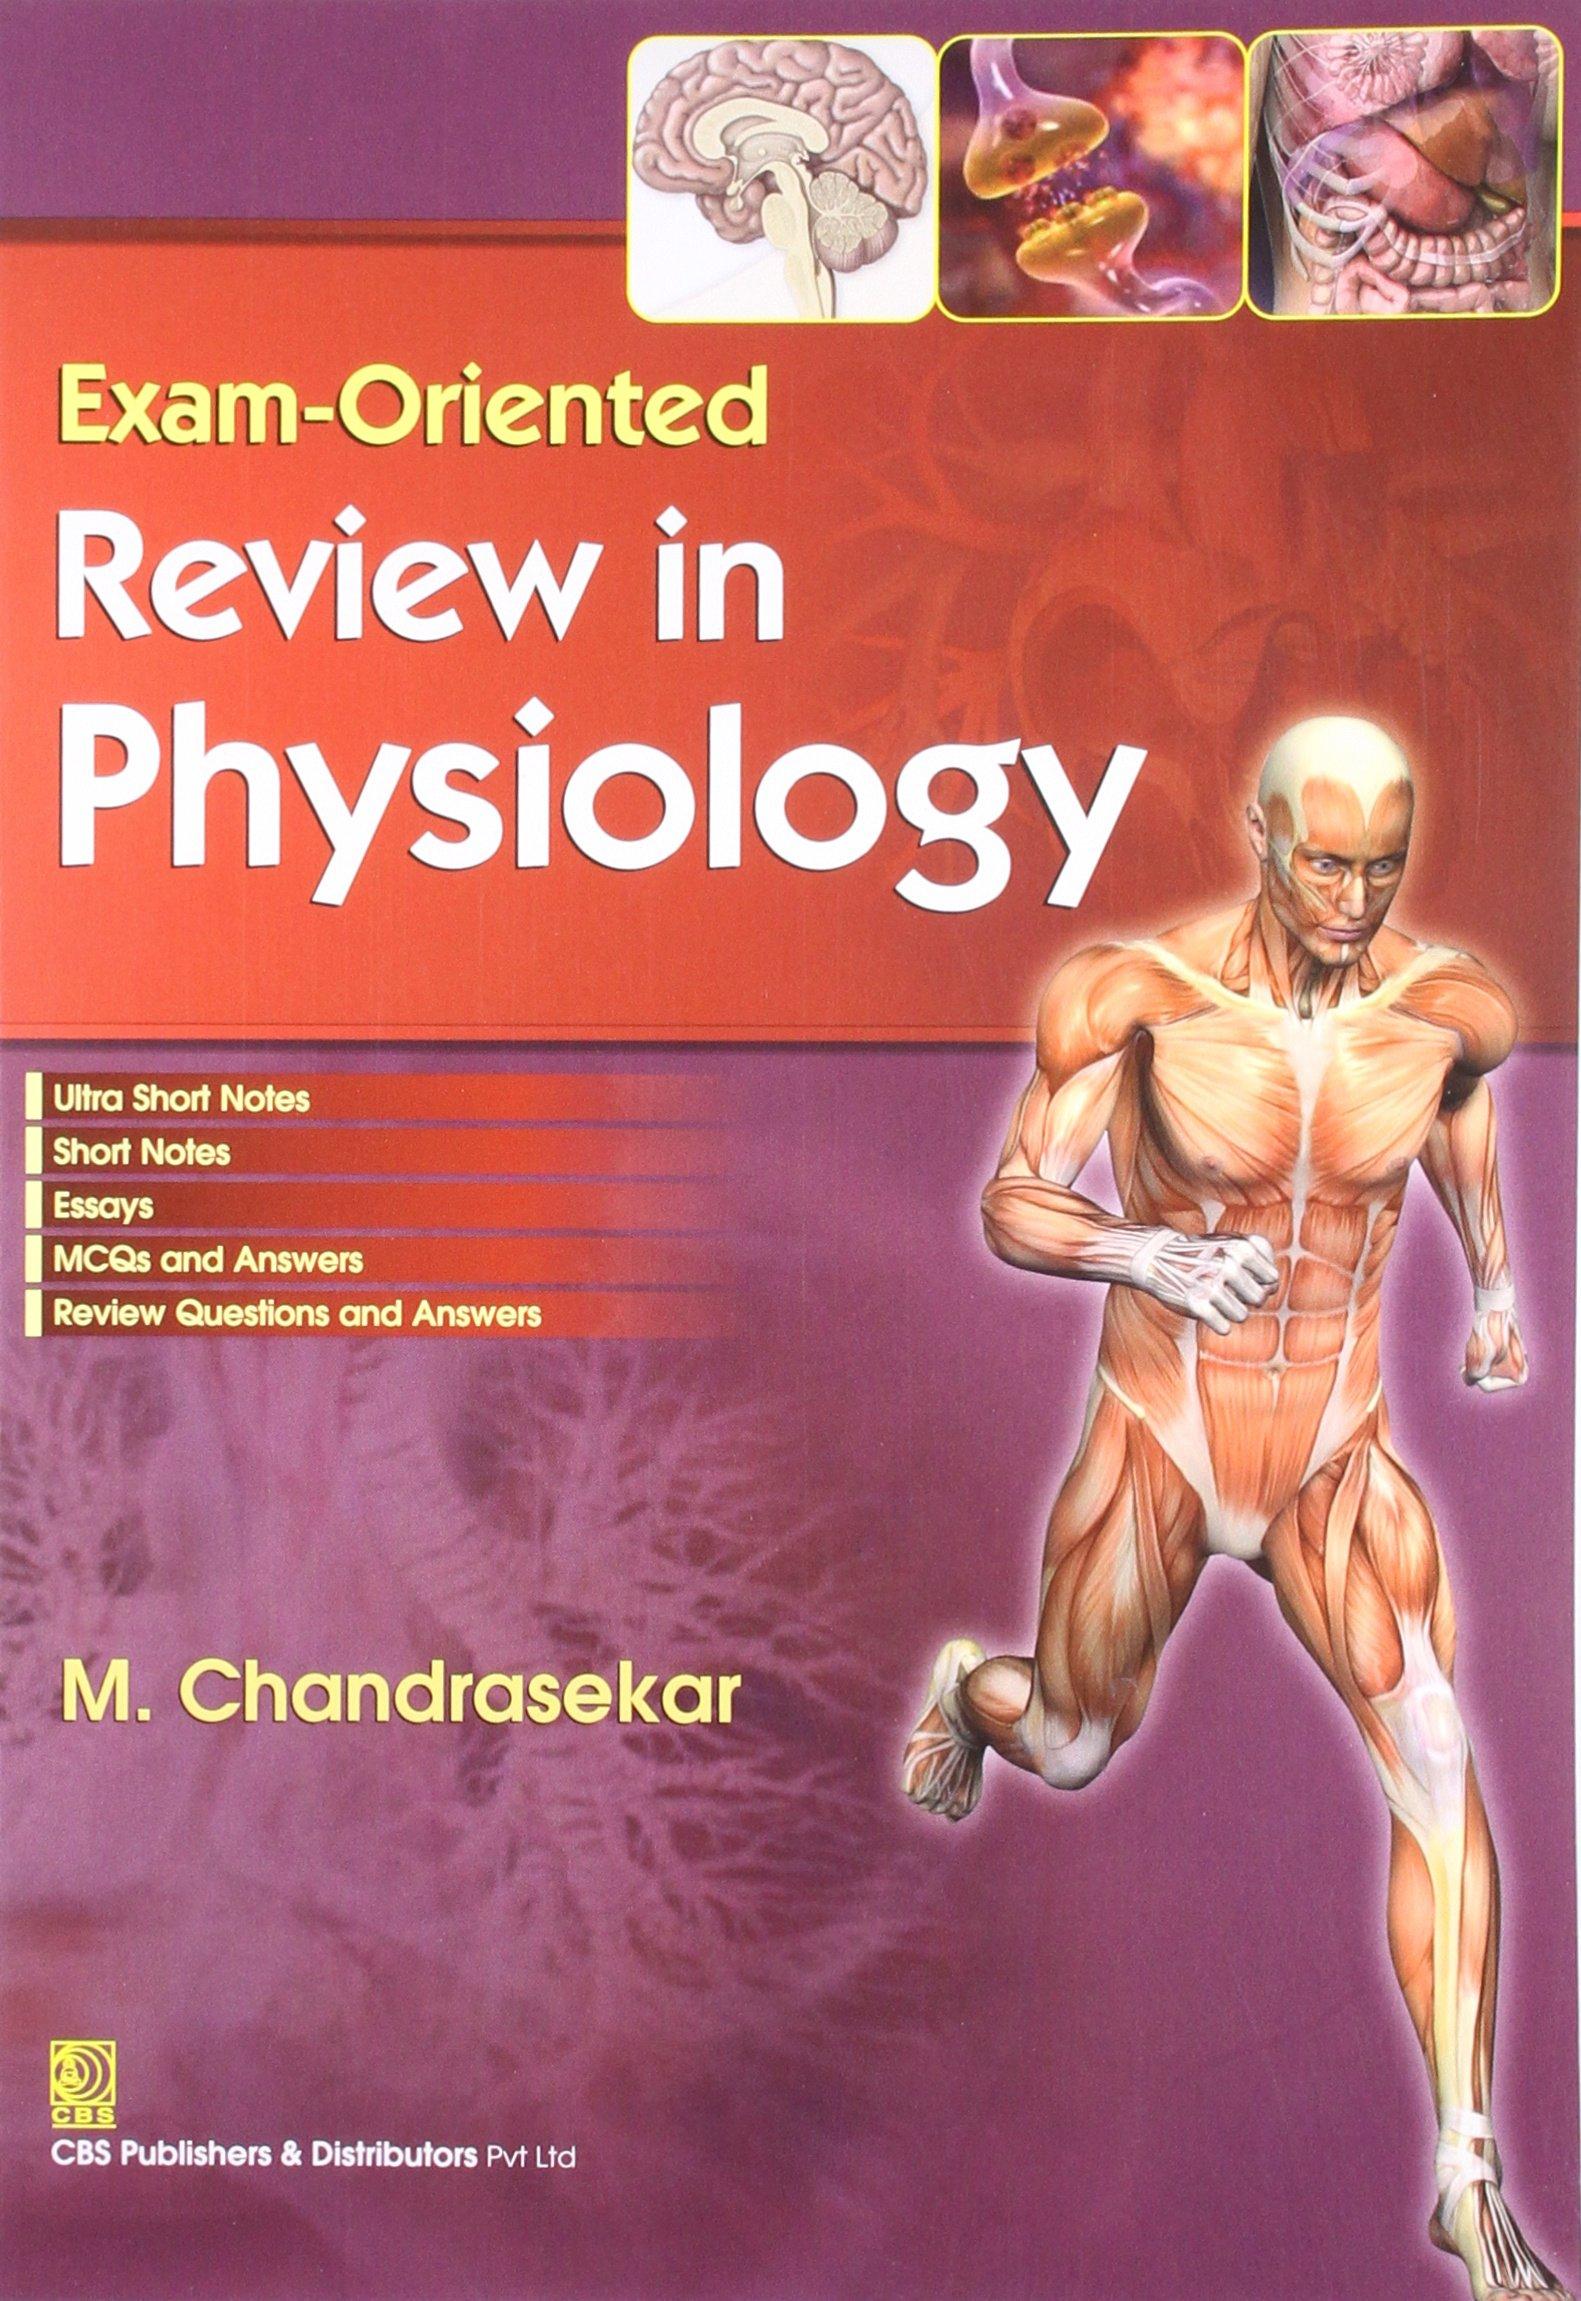 Buy Exam-Oriented Review in Physiology Book Online at Low Prices in ...